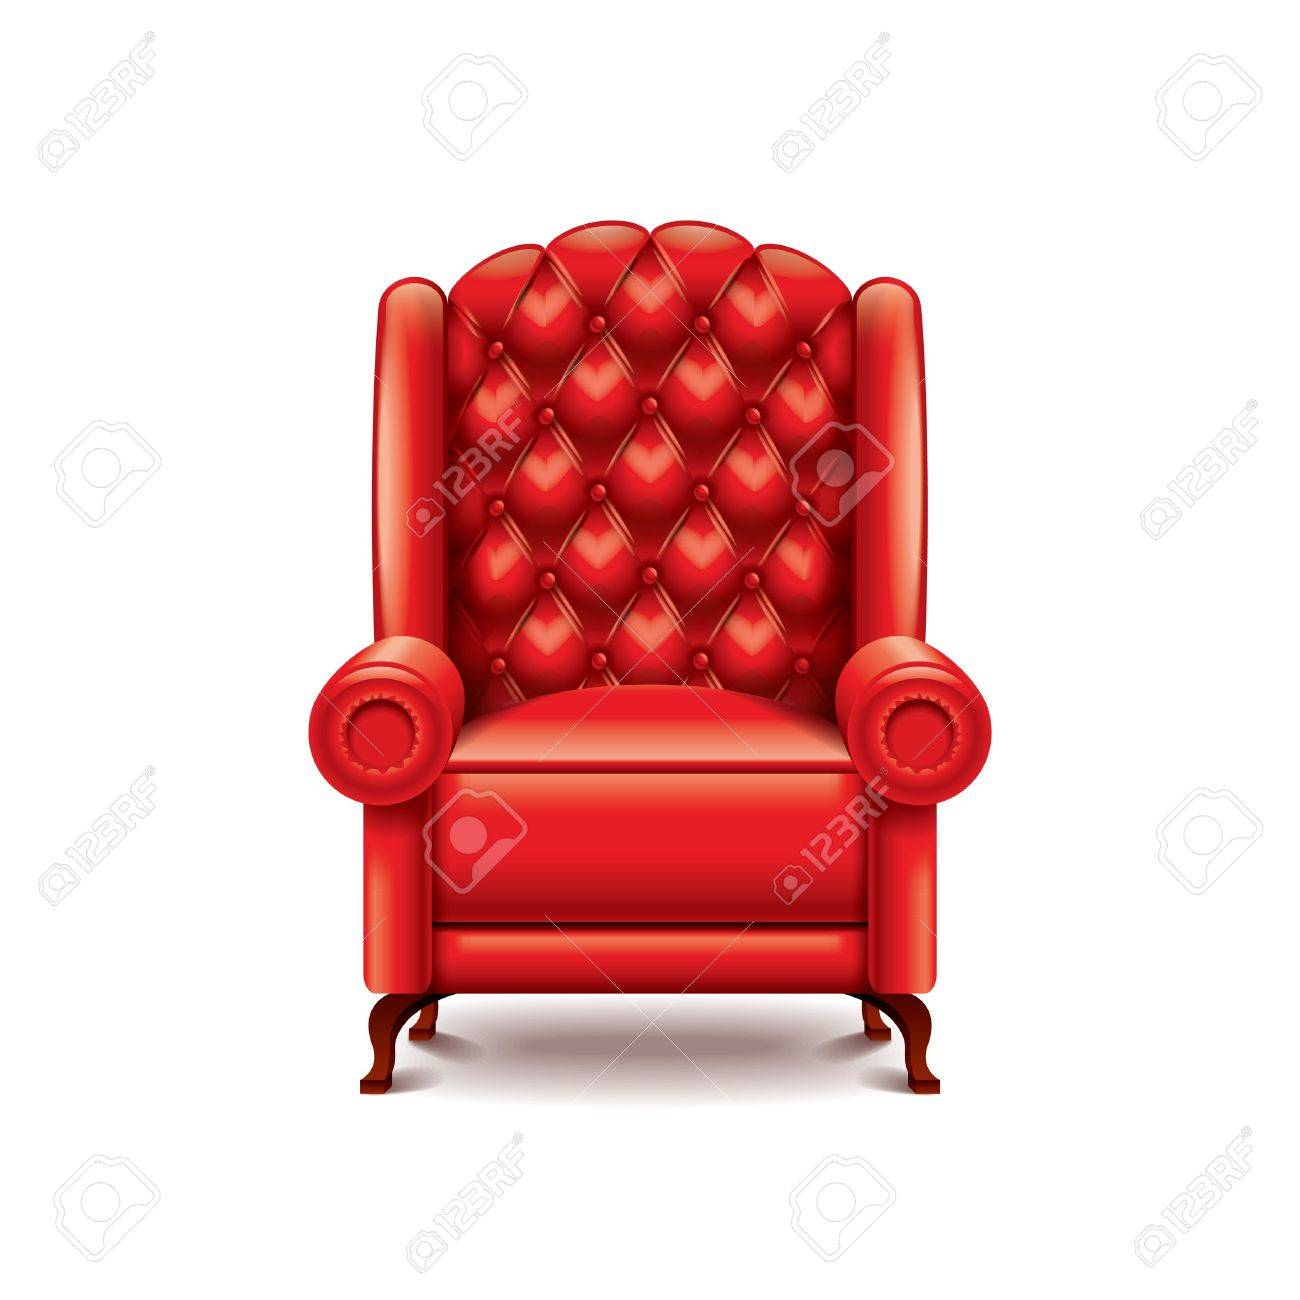 Red Armchair Isolated On White Photo Realistic Vector Illustration Stock  Vector   34262946